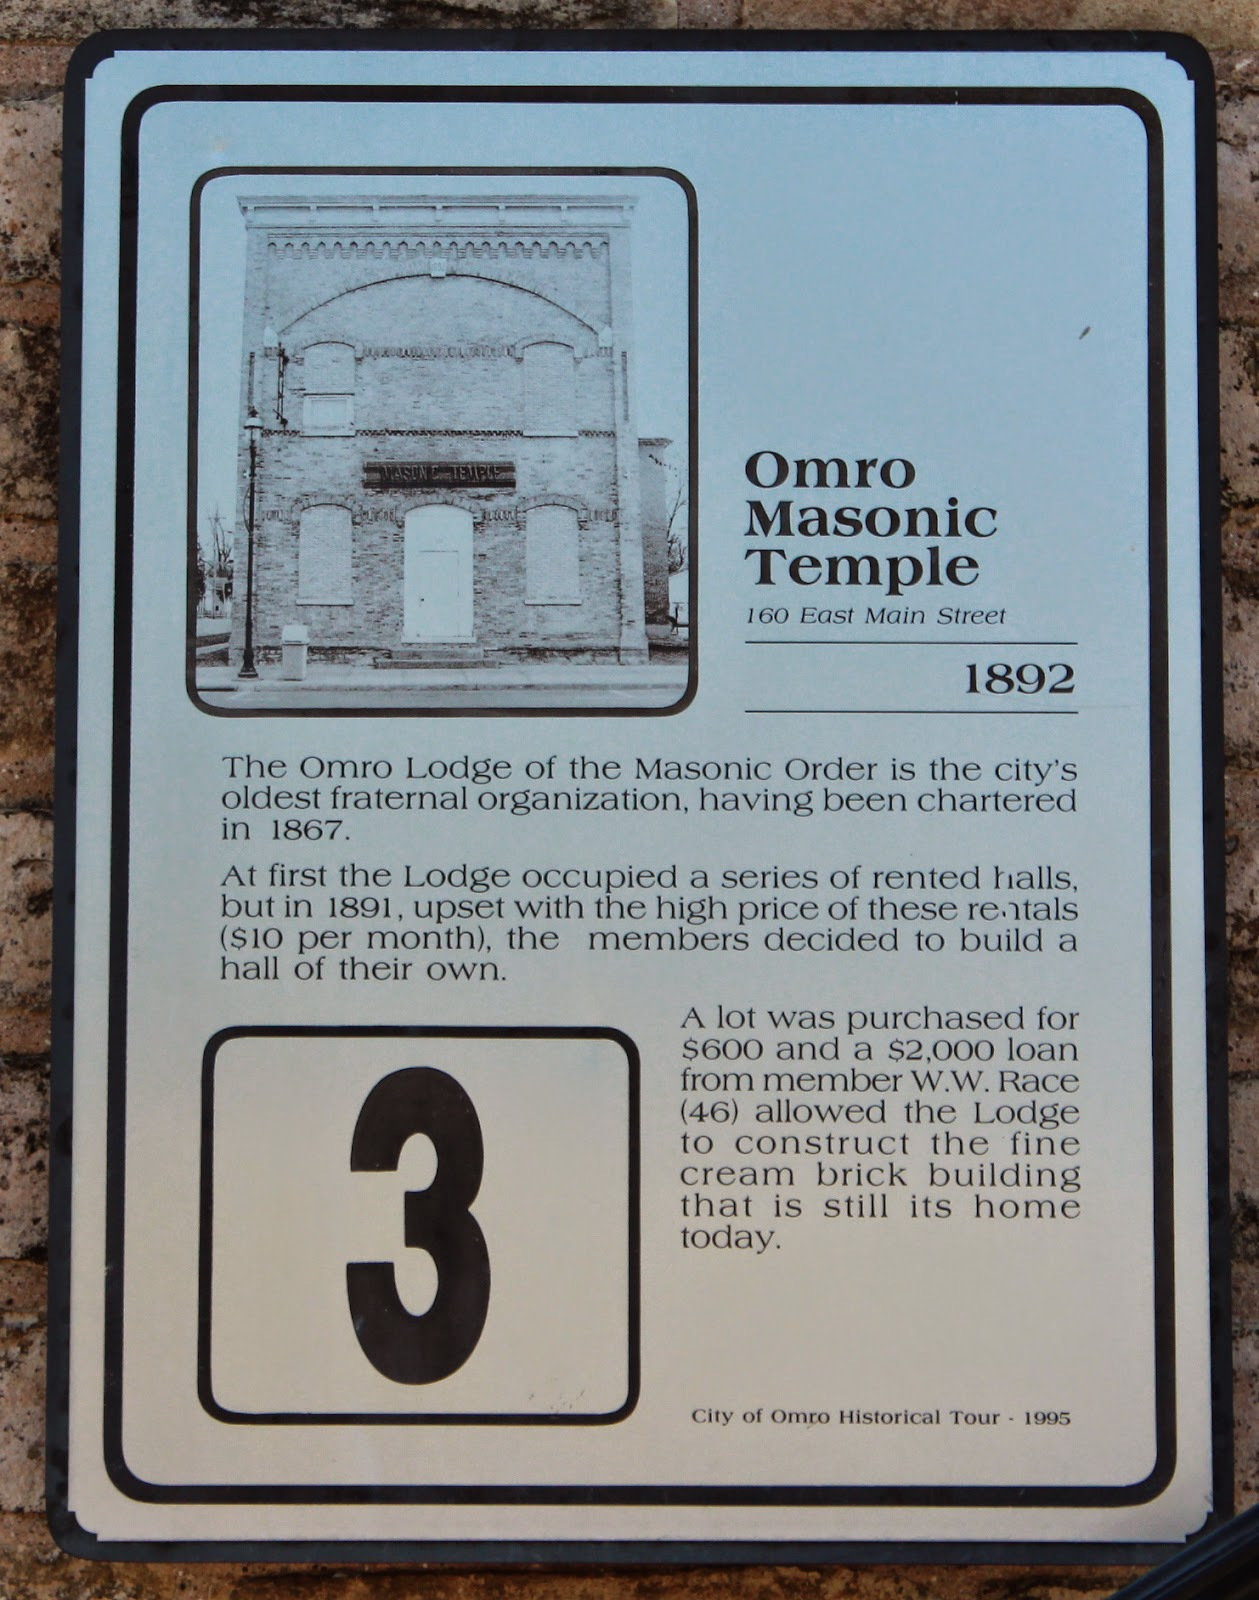 Wisconsin Historical Markers: Omro Masonic Temple (1892) (19)